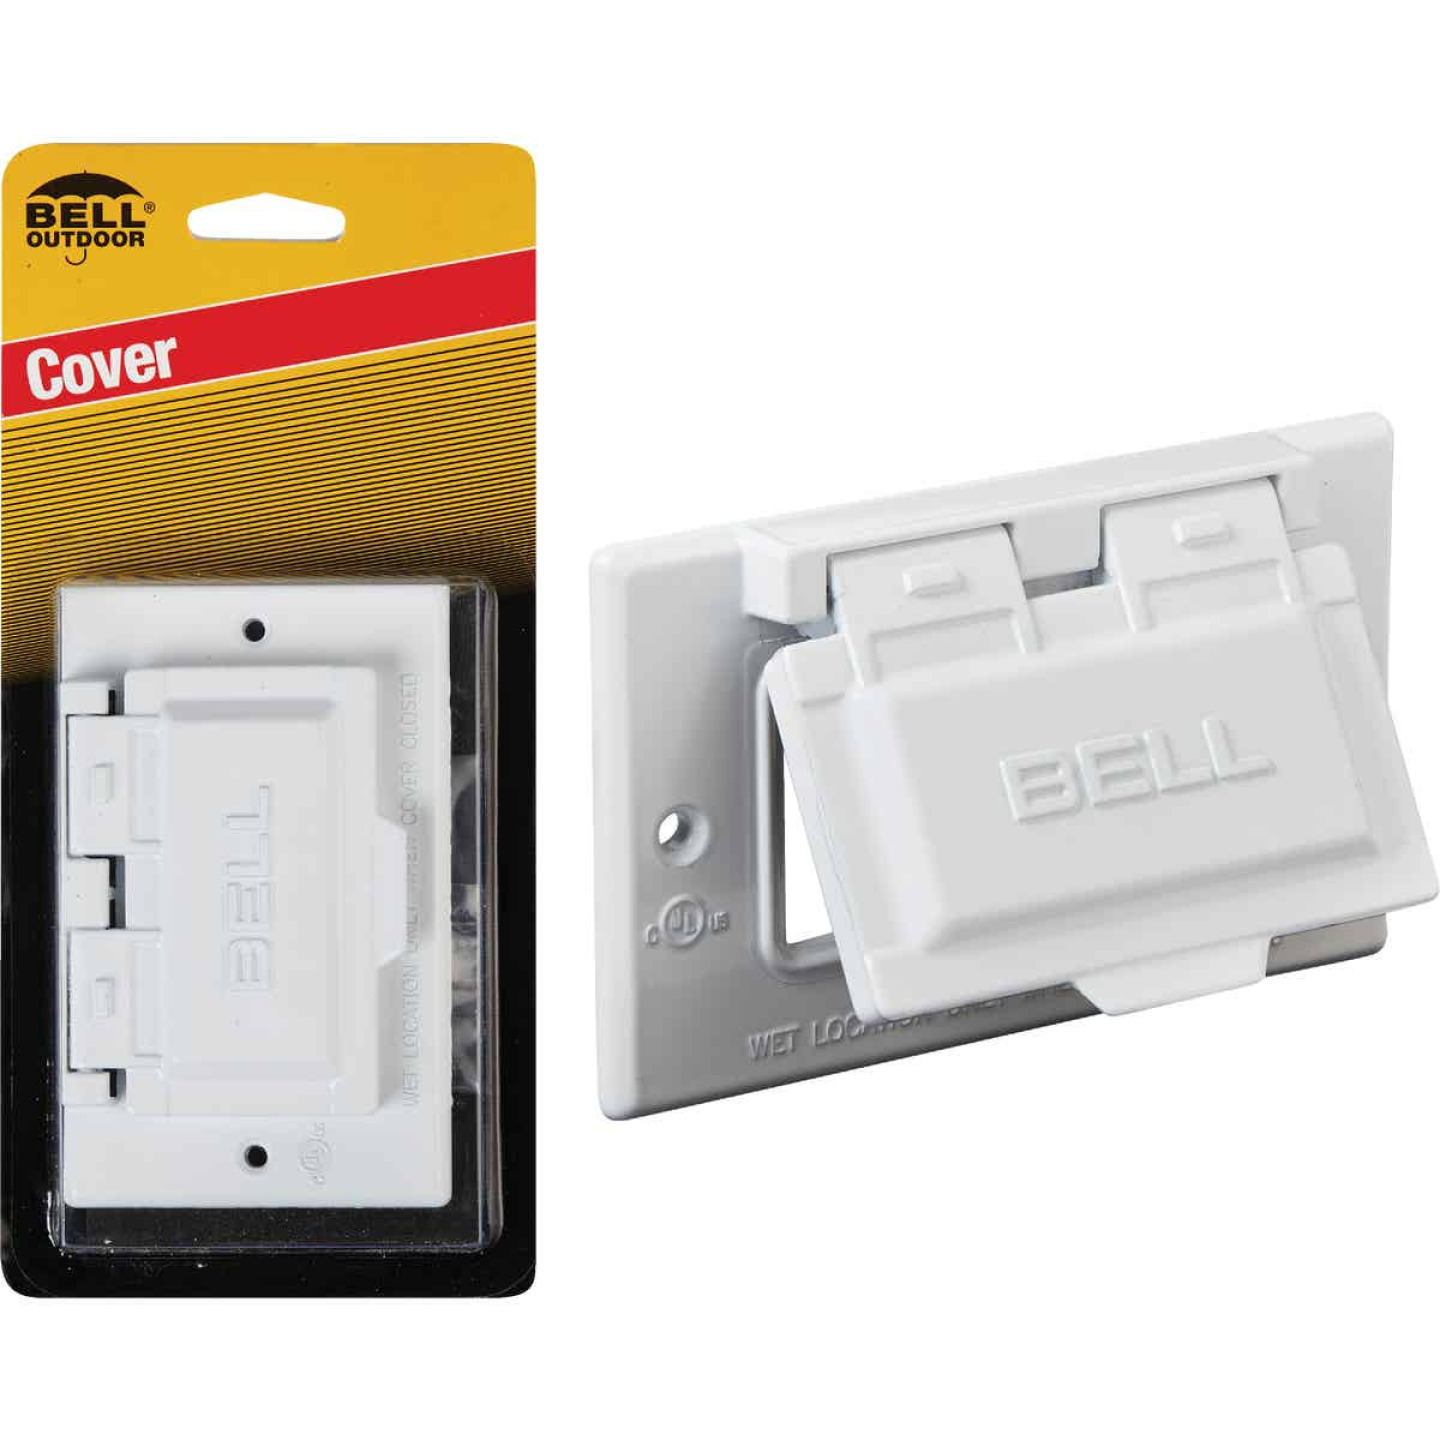 Bell Single Gang Horizontal GFCI Aluminum White Weatherproof Outdoor Electrical Cover Image 1